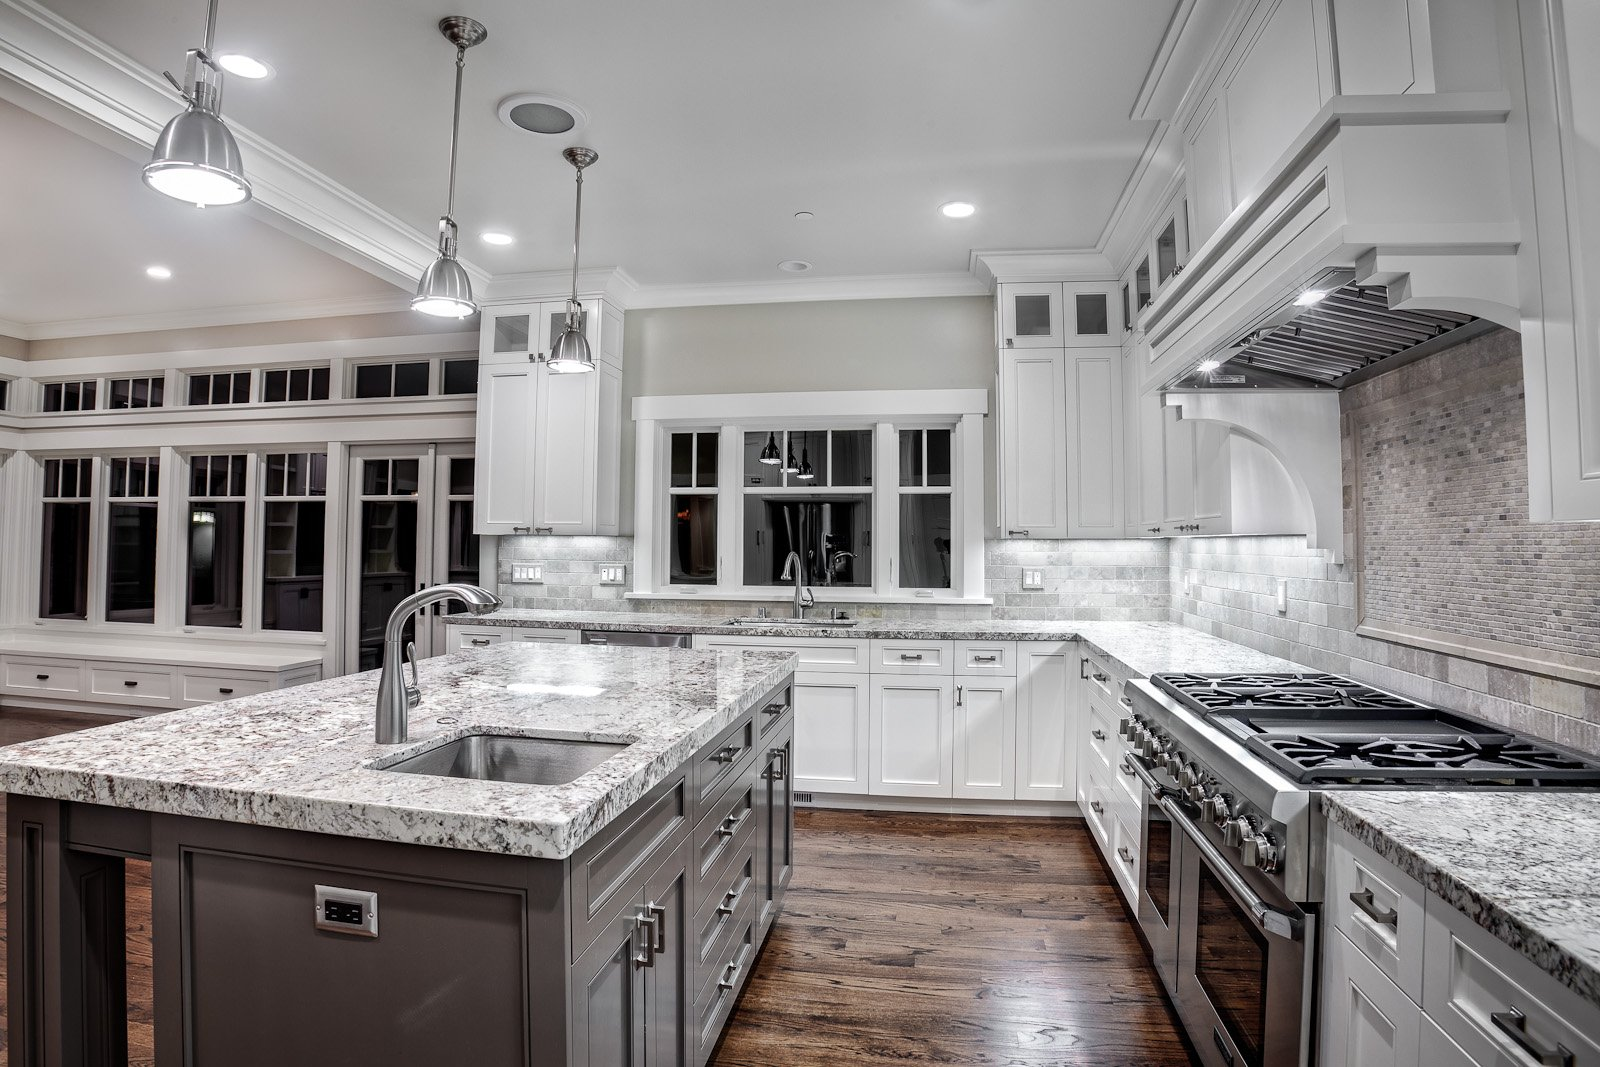 wonderful-kashmir-white-granite-countertops-for-contemporary-kitchen-ideas-together-with-metal-pendant-lamps-and-wooden-floor.jpg